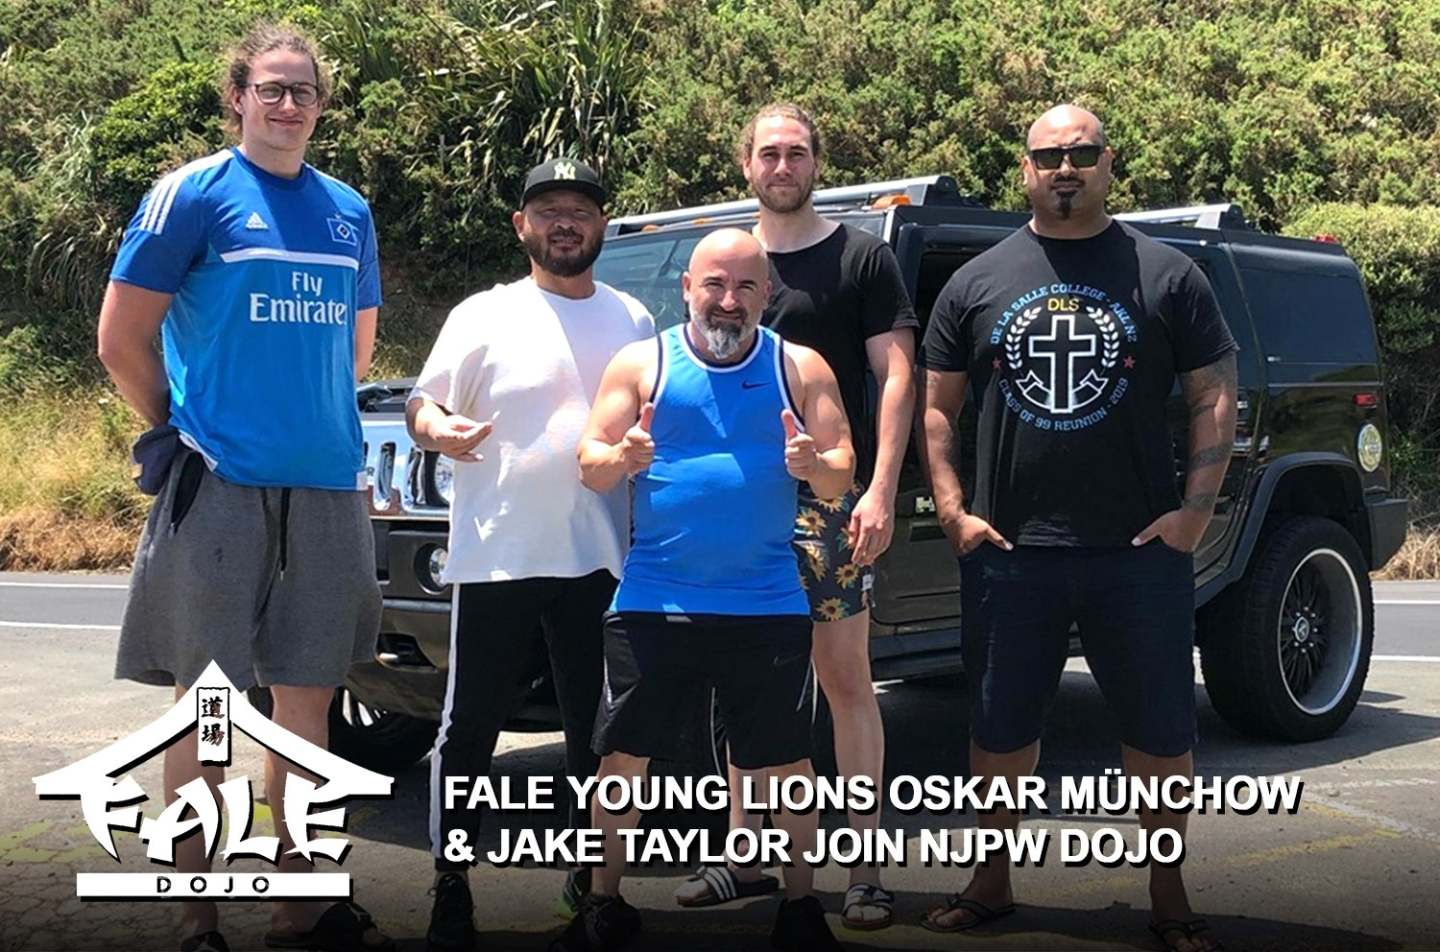 Fale Dojo Young Lions Oskar Münchow and Jake Taylor join NJPW Dojo